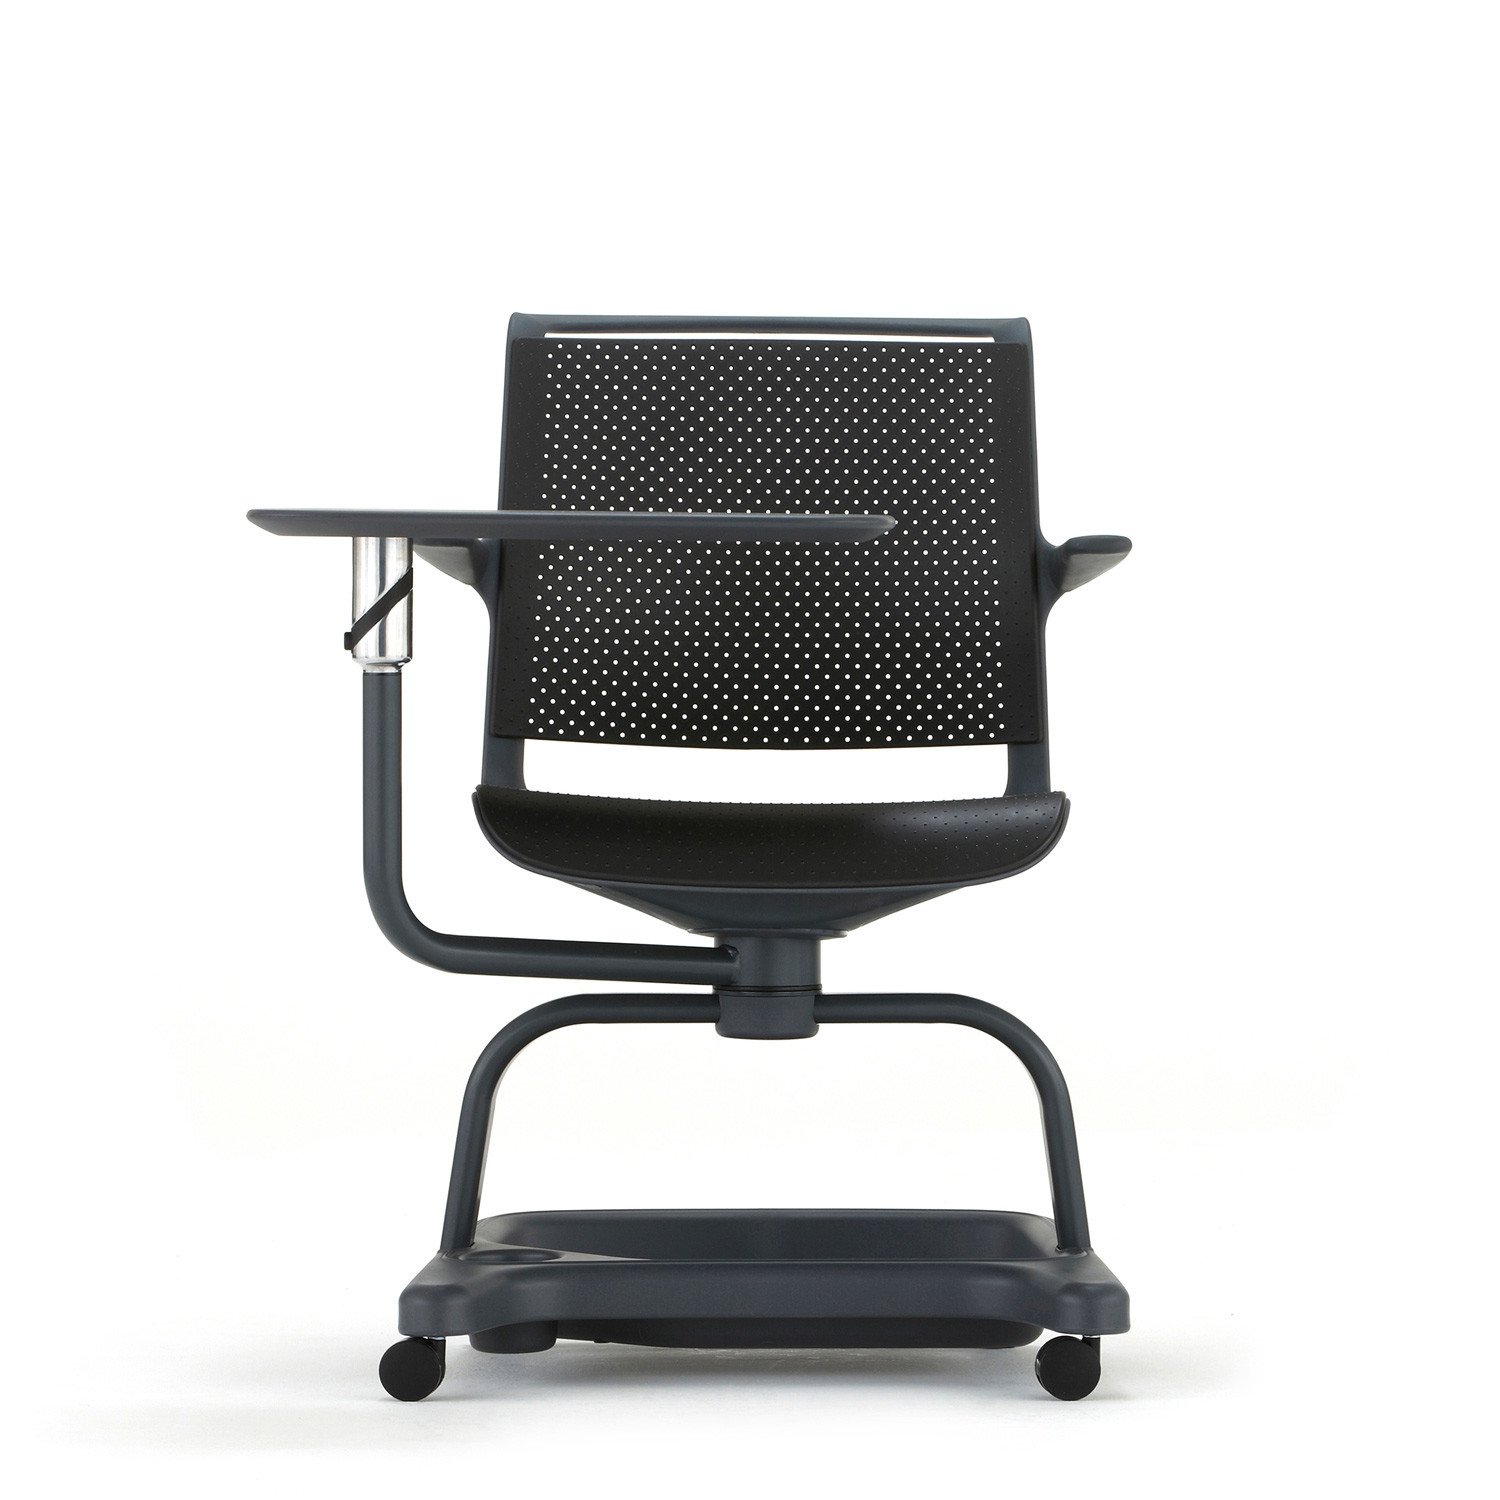 Ad-Lib Scholar Training Chair